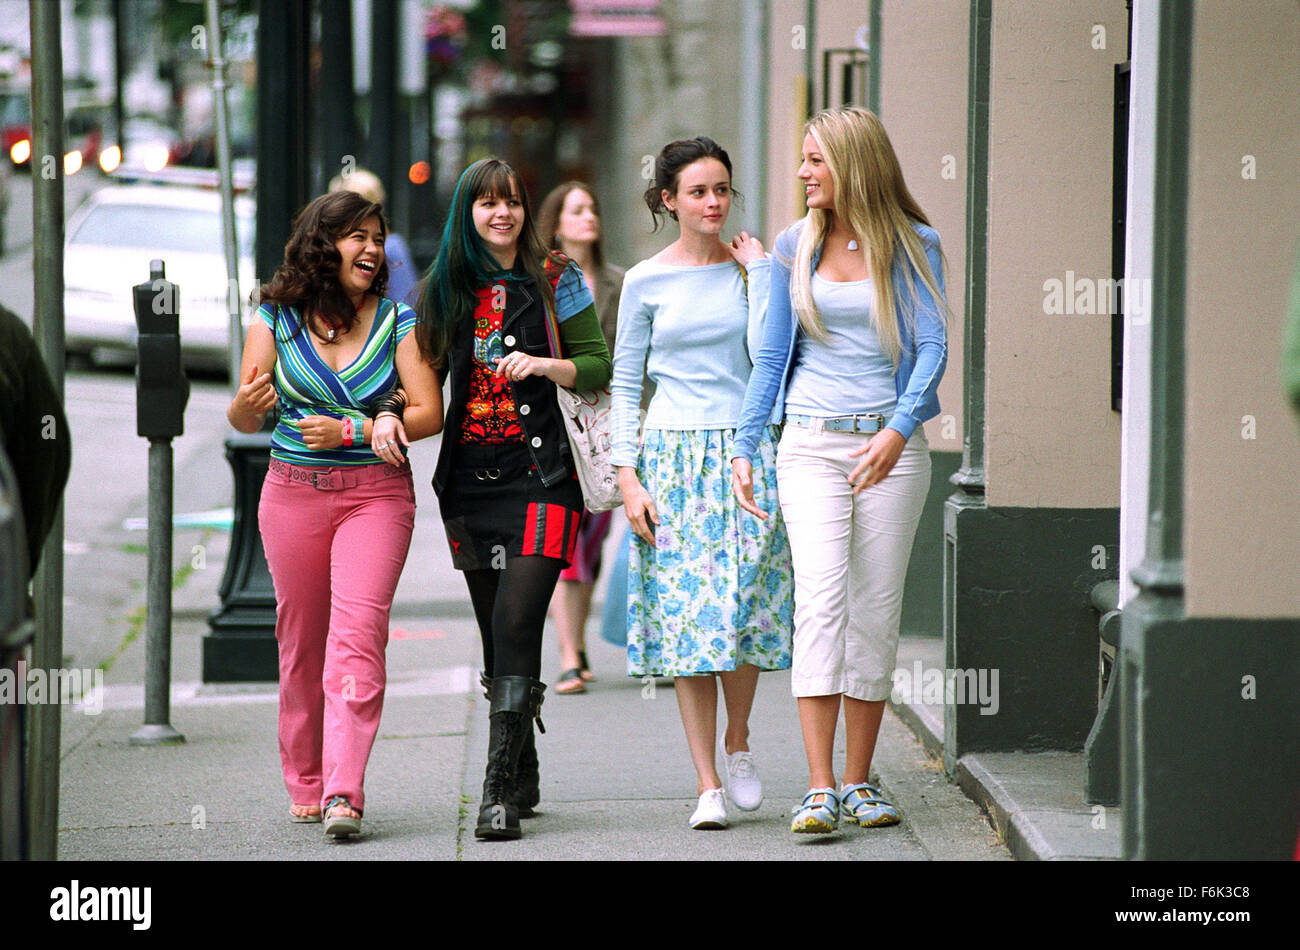 RELEASE DATE: June 1, 2005. MOVIE TITLE: The Sisterhood of Traveling Pants. STUDIO: Alcon Entertainment. PLOT: The - Stock Image